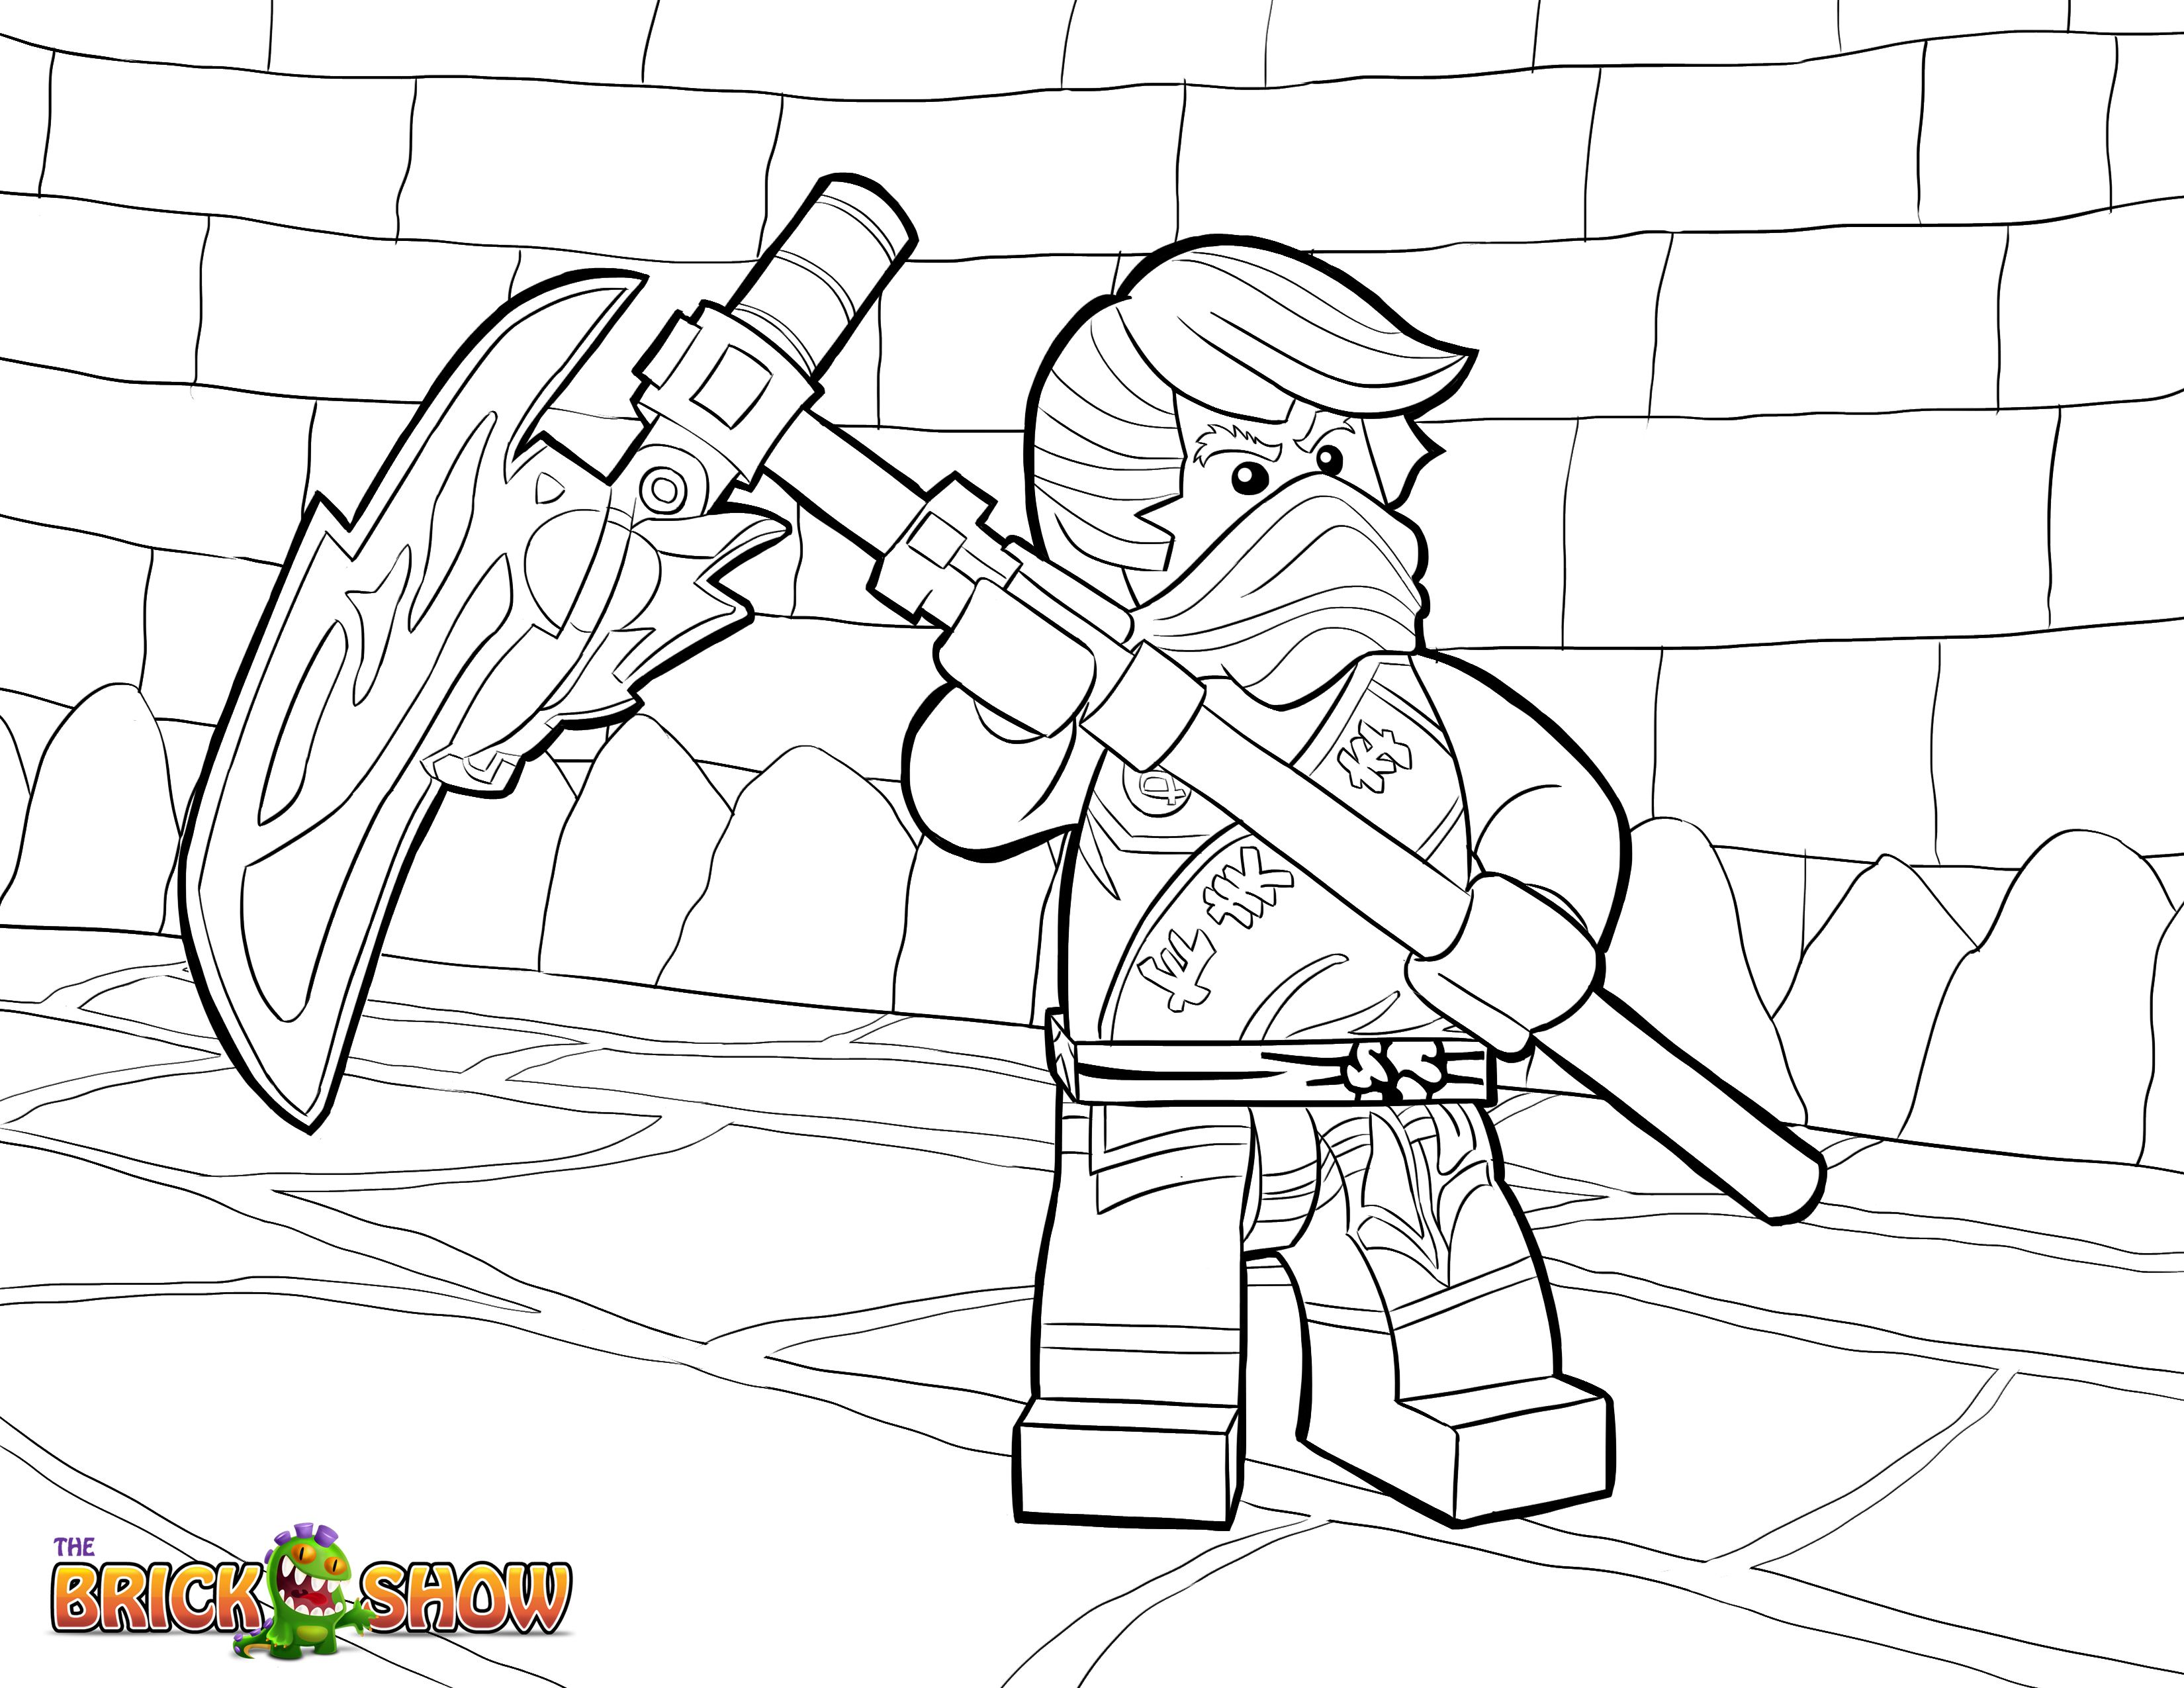 norcor brick coloring book pages - photo#6